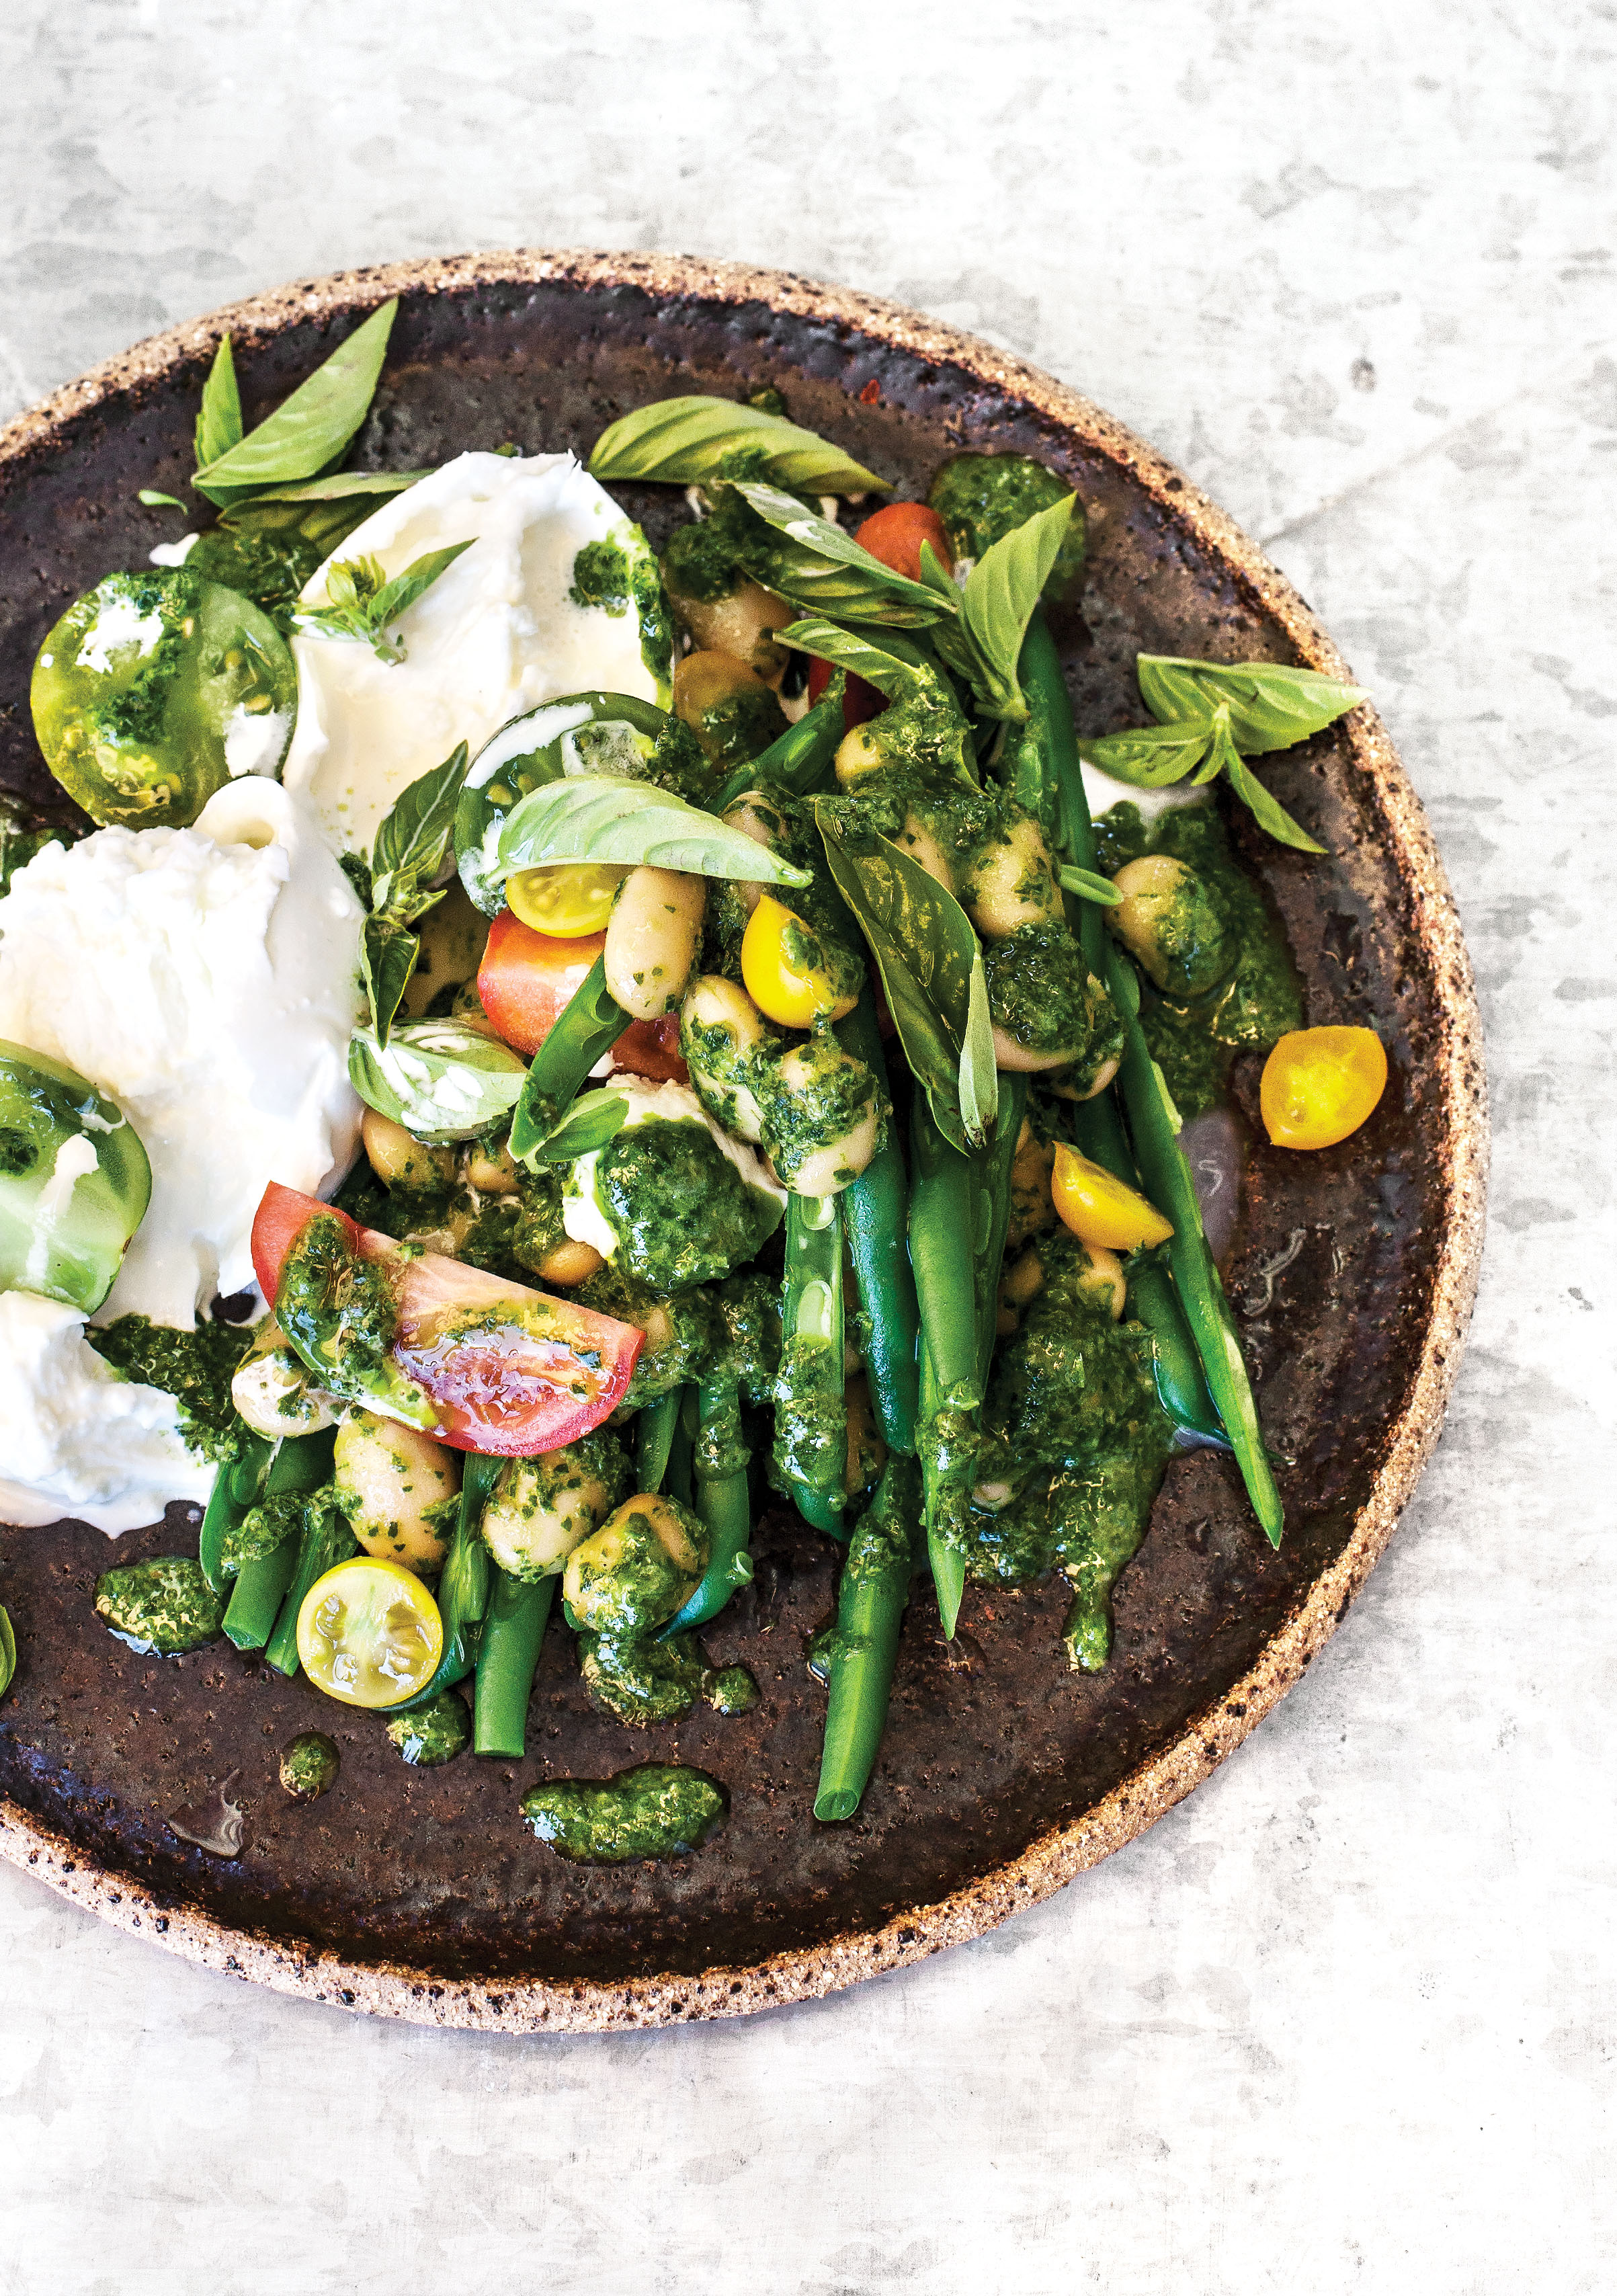 Annabel_Langbein_TOGETHER_NoCookingRequired_GreenSummerSauceWithbeansAndBurrata_PRINT.jpg